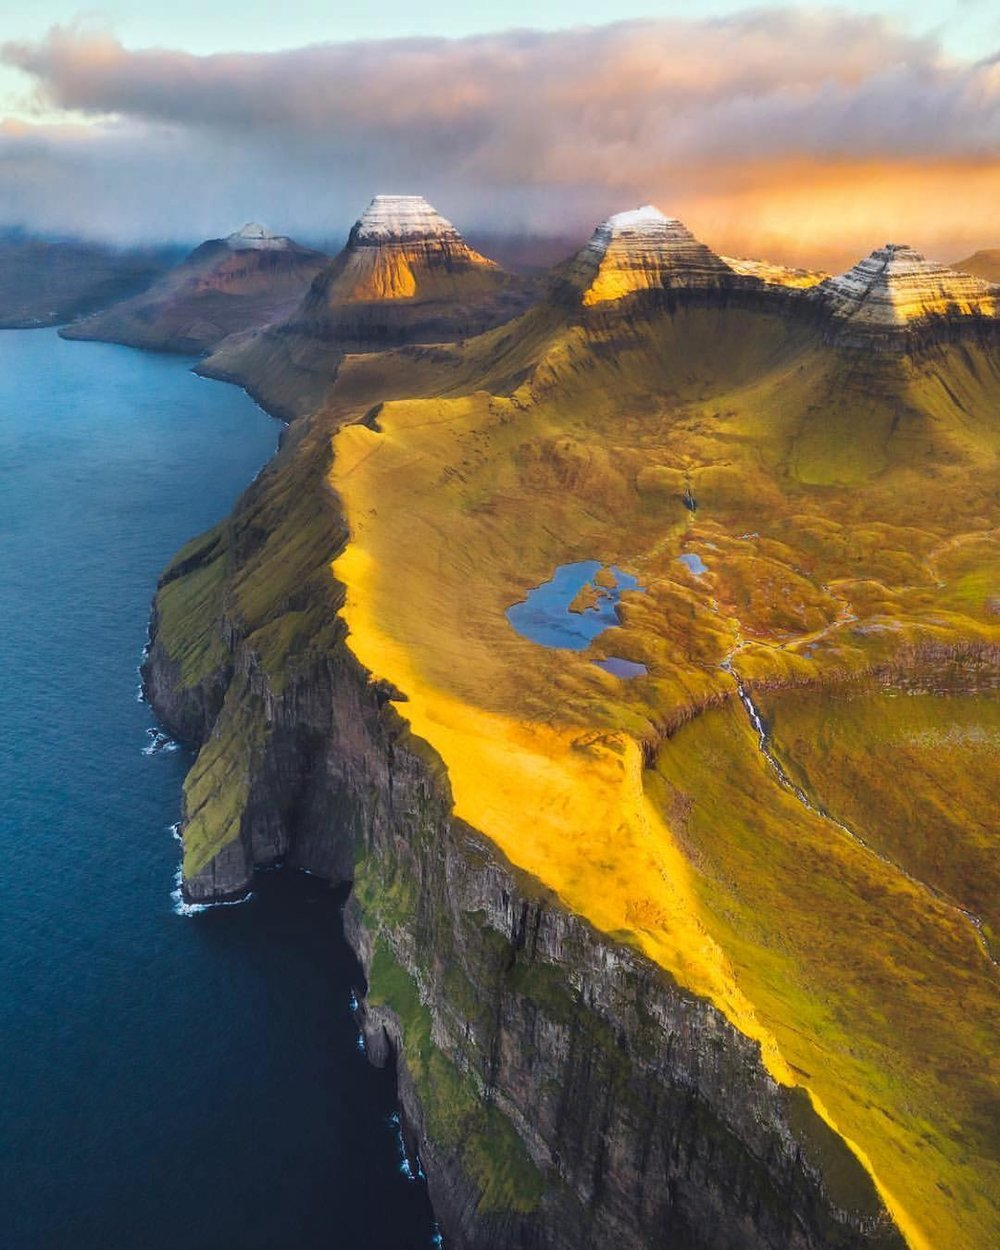 "Check out this amazing shot we found on Drone Of The Day, which captures Cape Enniberg, the northernmost point of the Faroe Islands. At 2,474 feet (754 m) high, Cape Enniberg is one of the highest promontories in the world. Throughout the summer, boat tours stop at Cape Enniberg to give tourists an up-close view of the massive cliff and the famous bird colony found there.  62°23'00.0""N, 6°34'00.0""W  Source imagery: Karl 'Shakur' Ndieli"